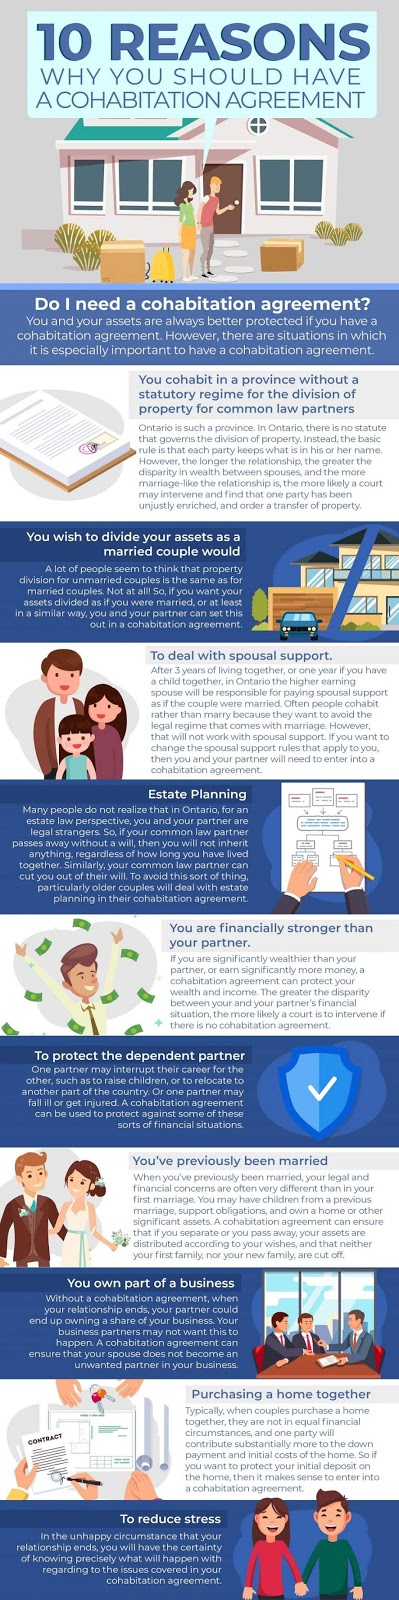 10 Reasons Why You Should Have A Cohabitation Agreement Visulattic